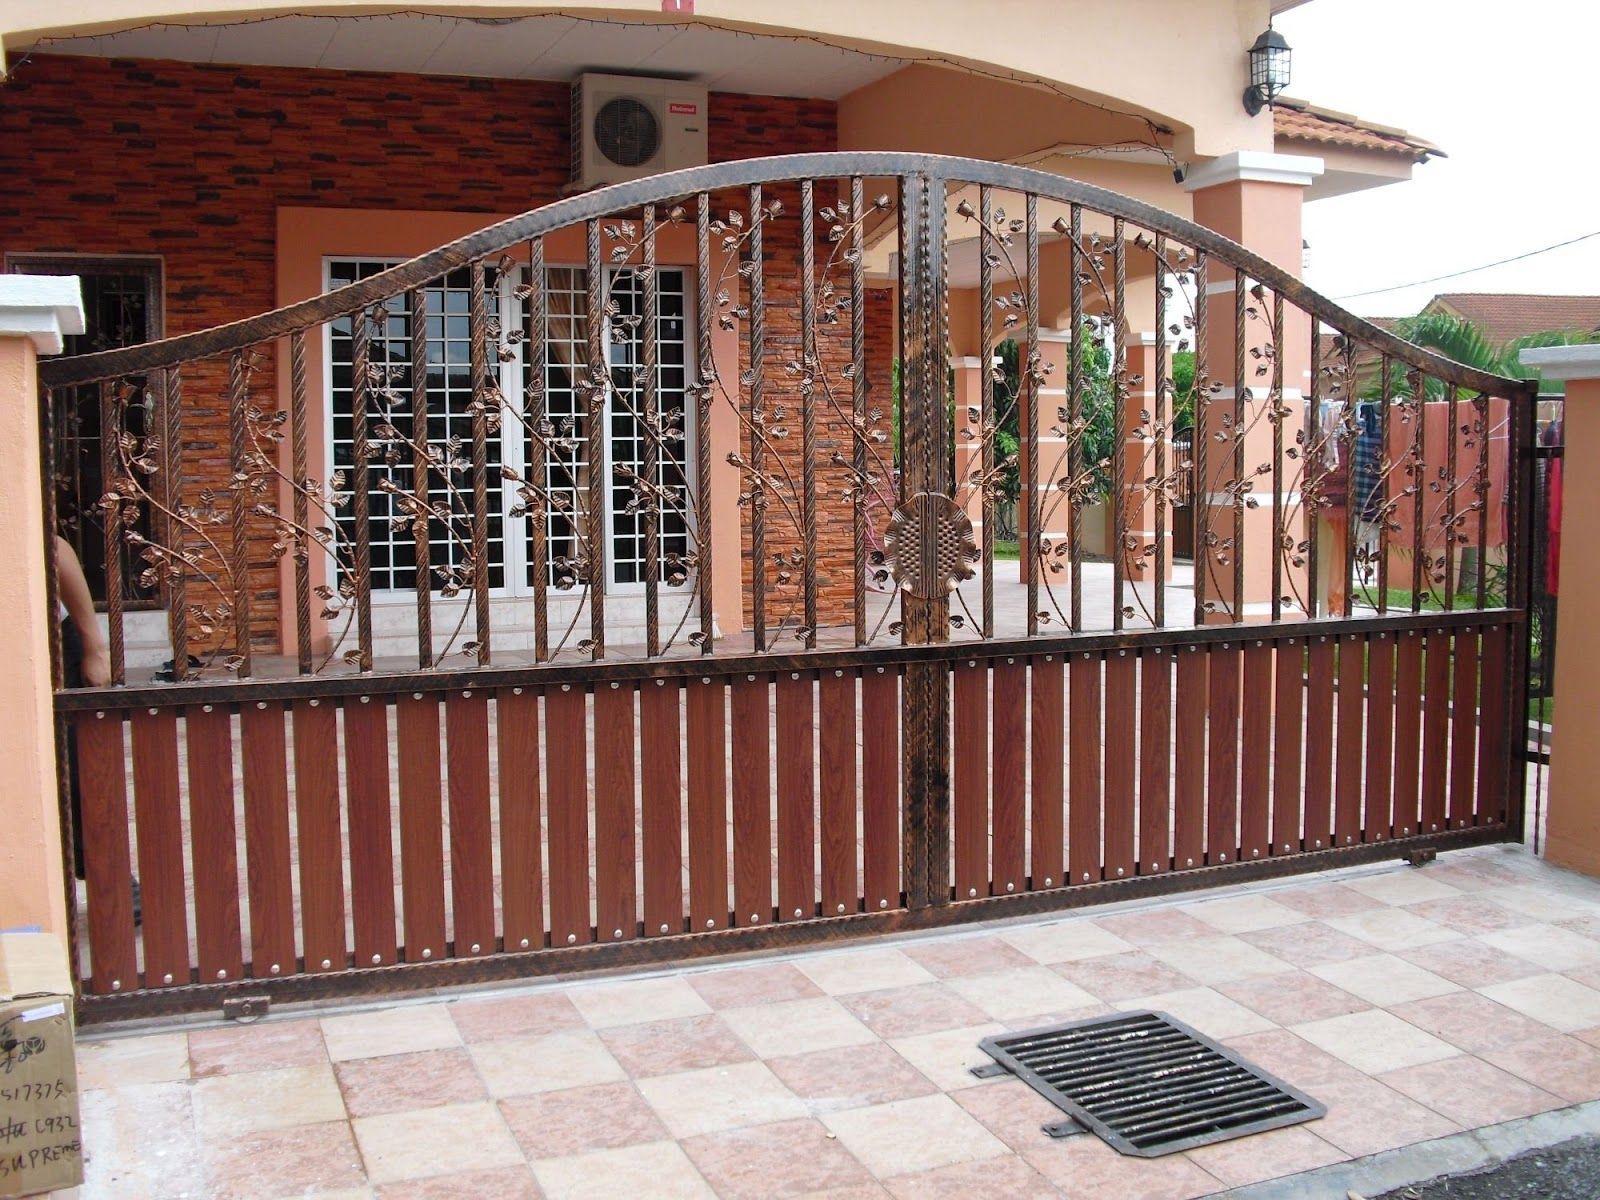 Gate Design Ideas horizontal slat fence design pictures remodel decor and ideas page 36 Modern Homes Iron Main Entrance Gate Designs Ideas